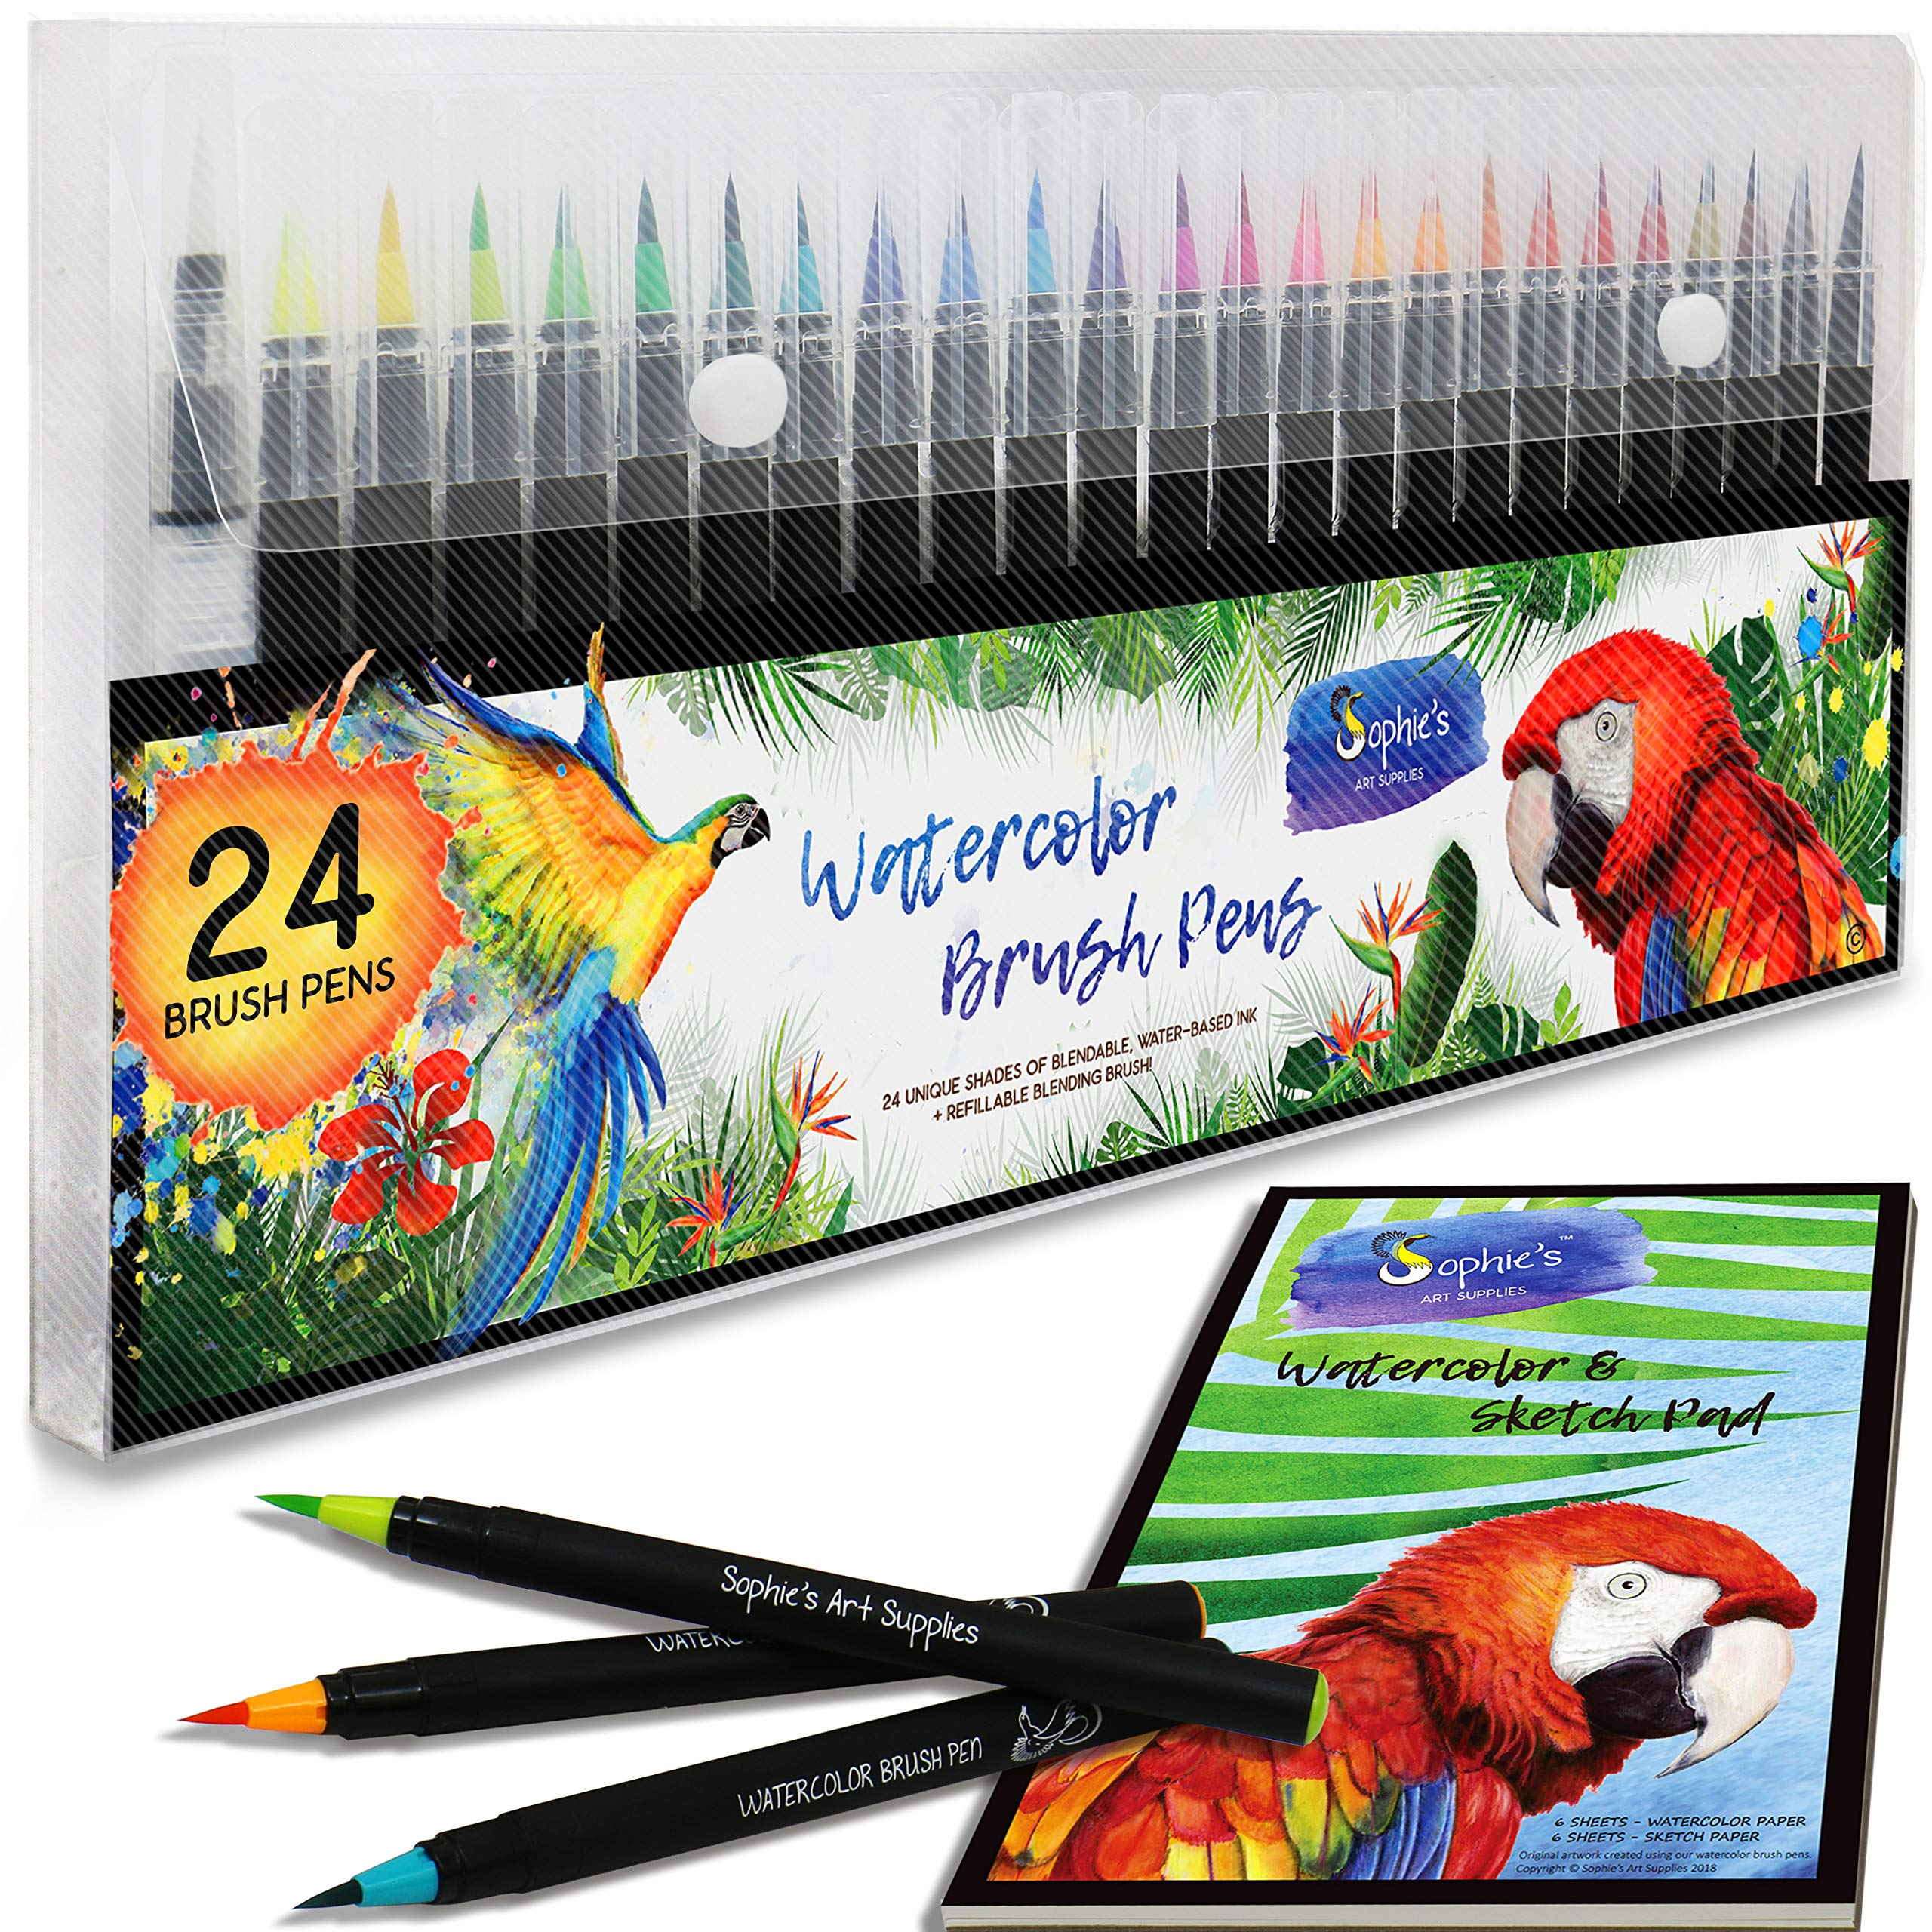 Premium Watercolor Real Brush Pens by Sophie's Art Supplies [24 Pack]. Vibrant Water Soluble Ink. Flexible Brush Tips for Watercolor Effects, Coloring and Calligraphy. Free Blending Brush + Pad! by Sophie's Art Supplies